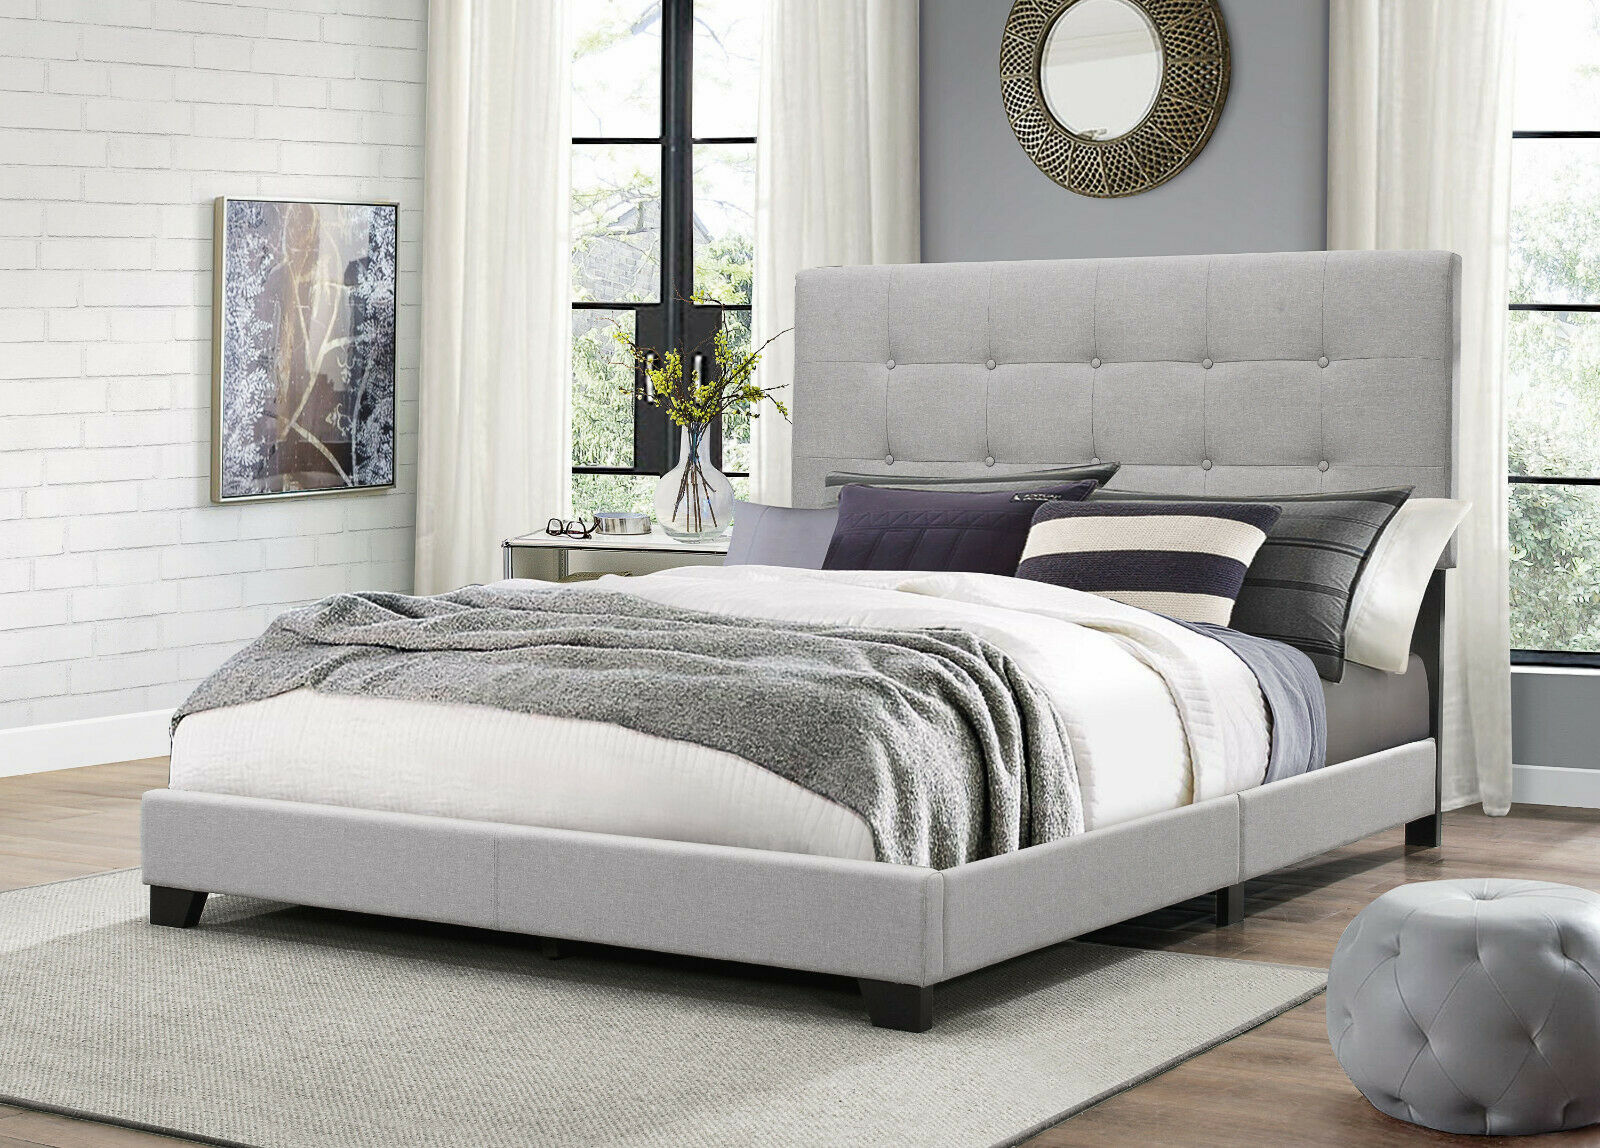 Eastern King Size Bed Silver Faux Leather Tufted Wood Frame Bedroom Headboard For Sale Online Ebay